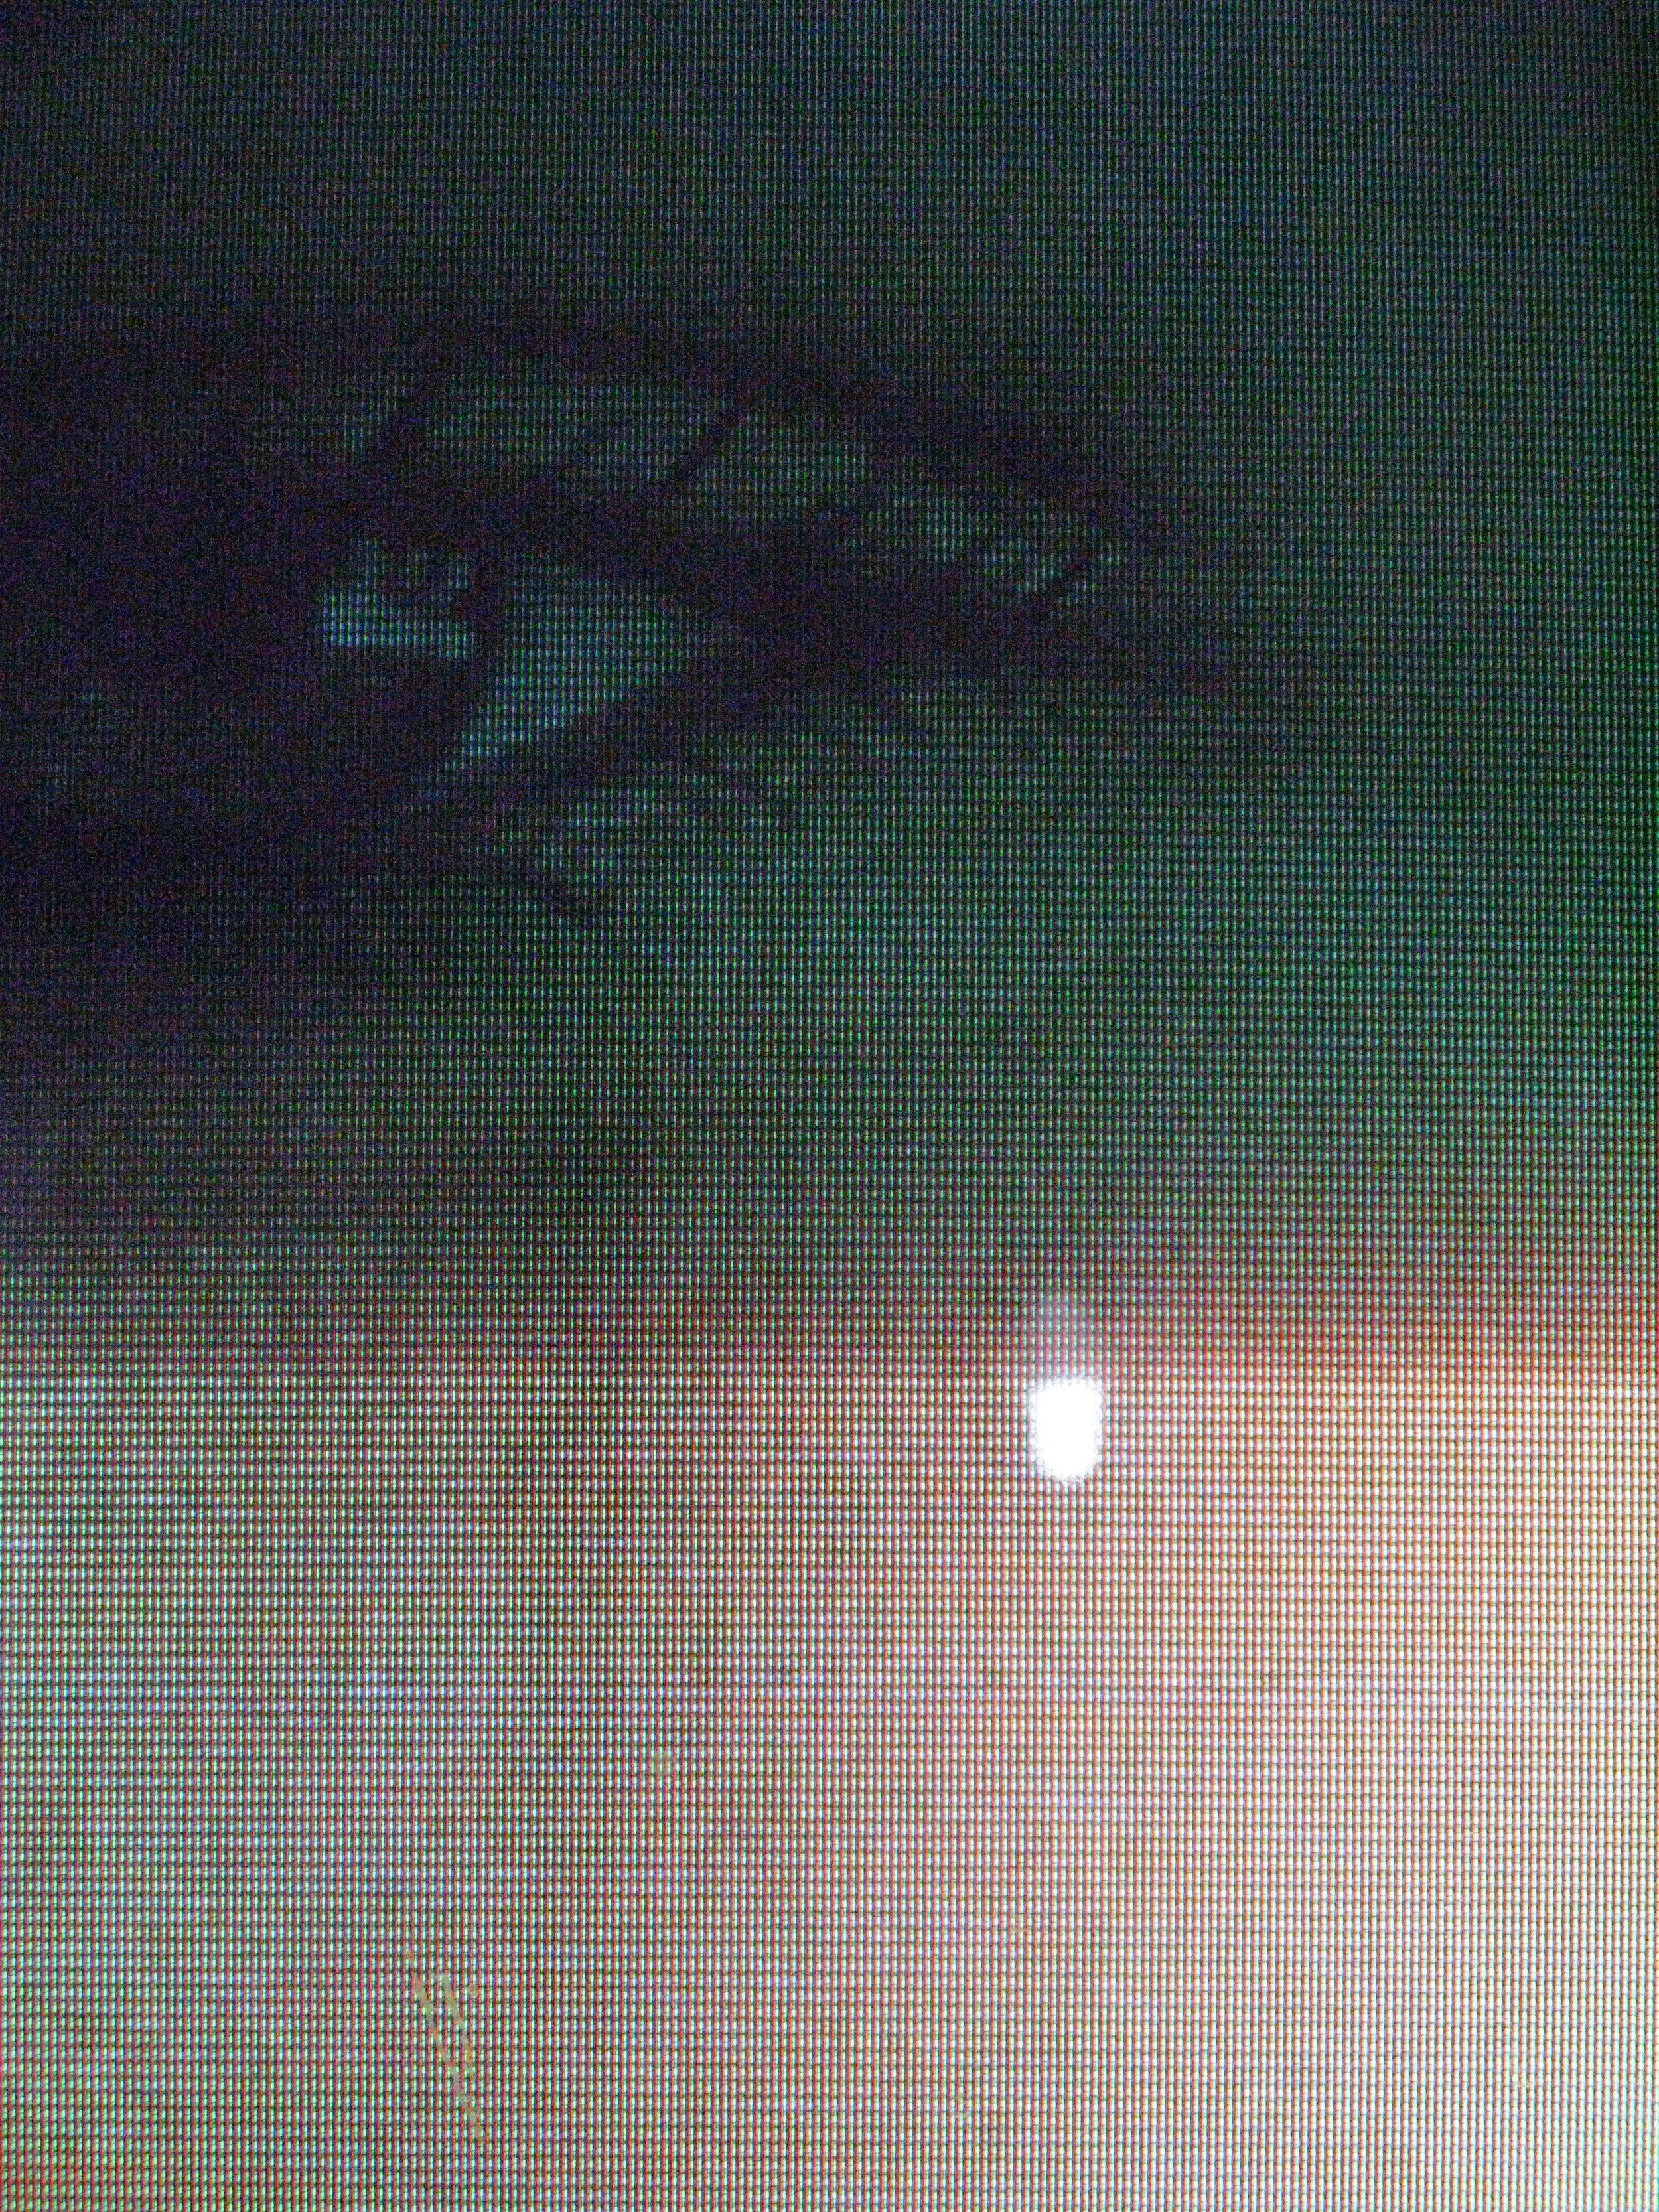 Watching for Transport, 2010